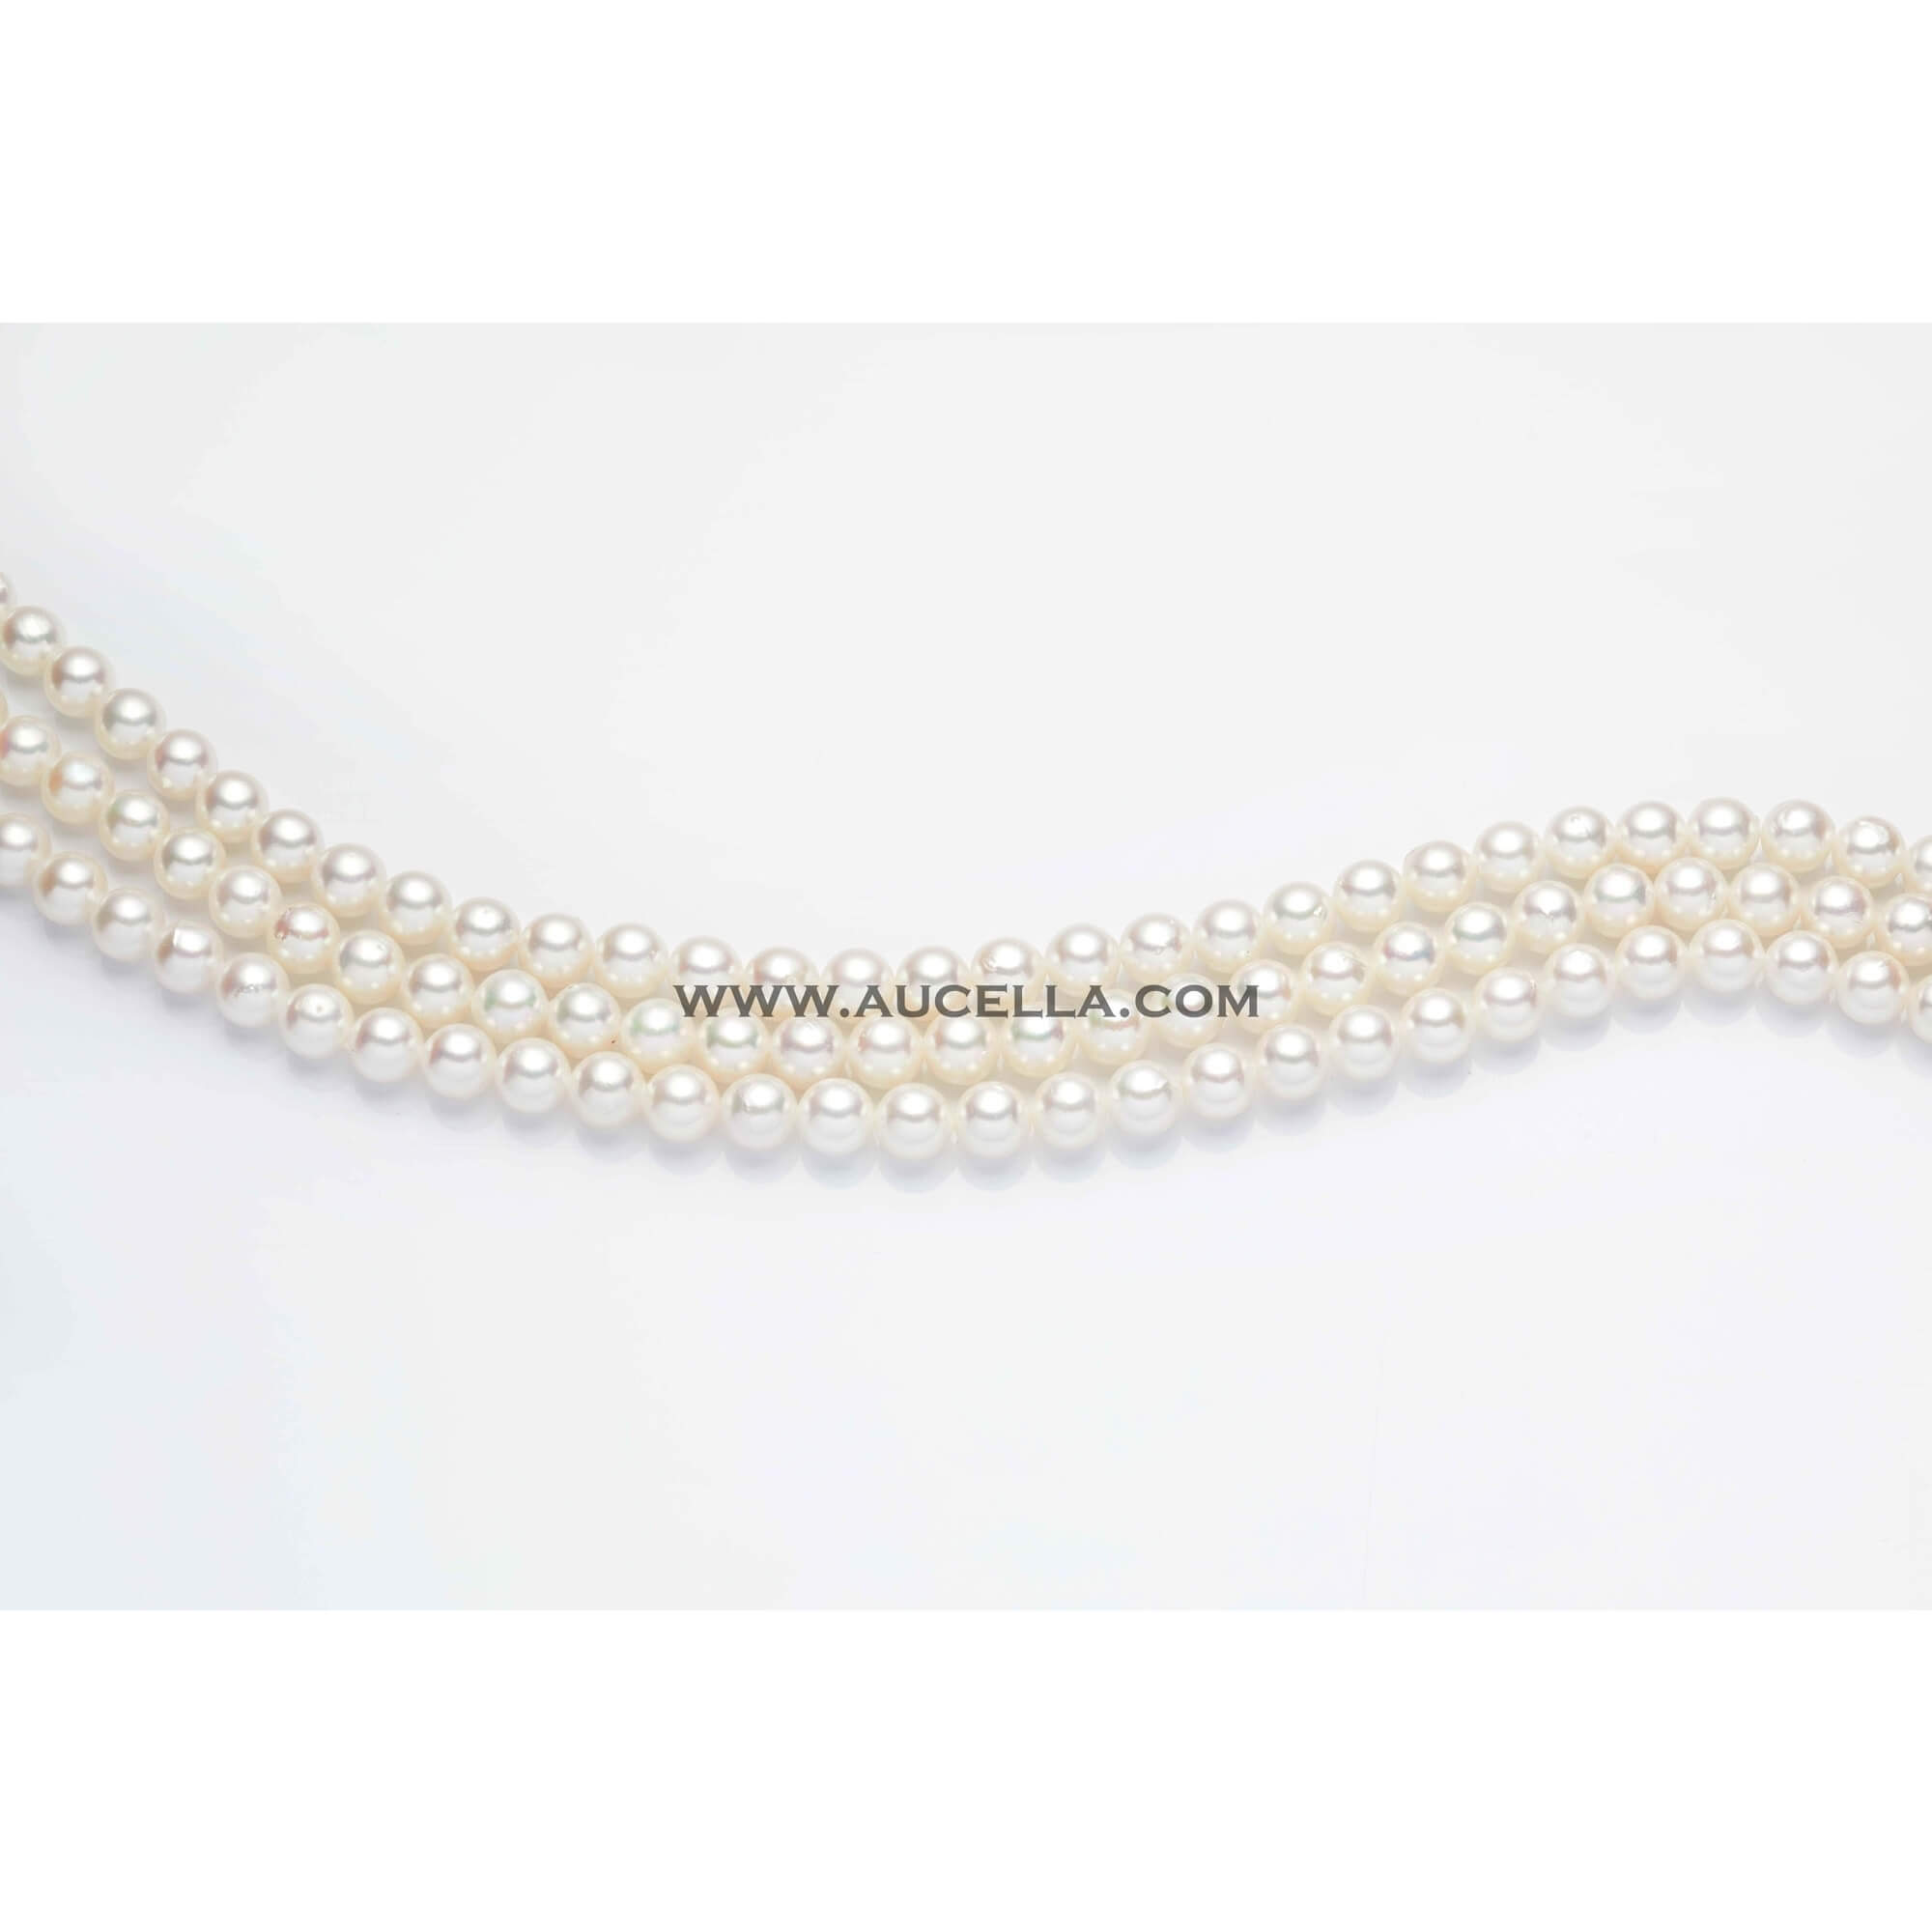 Japan akoya pearls, size 9,5 mm